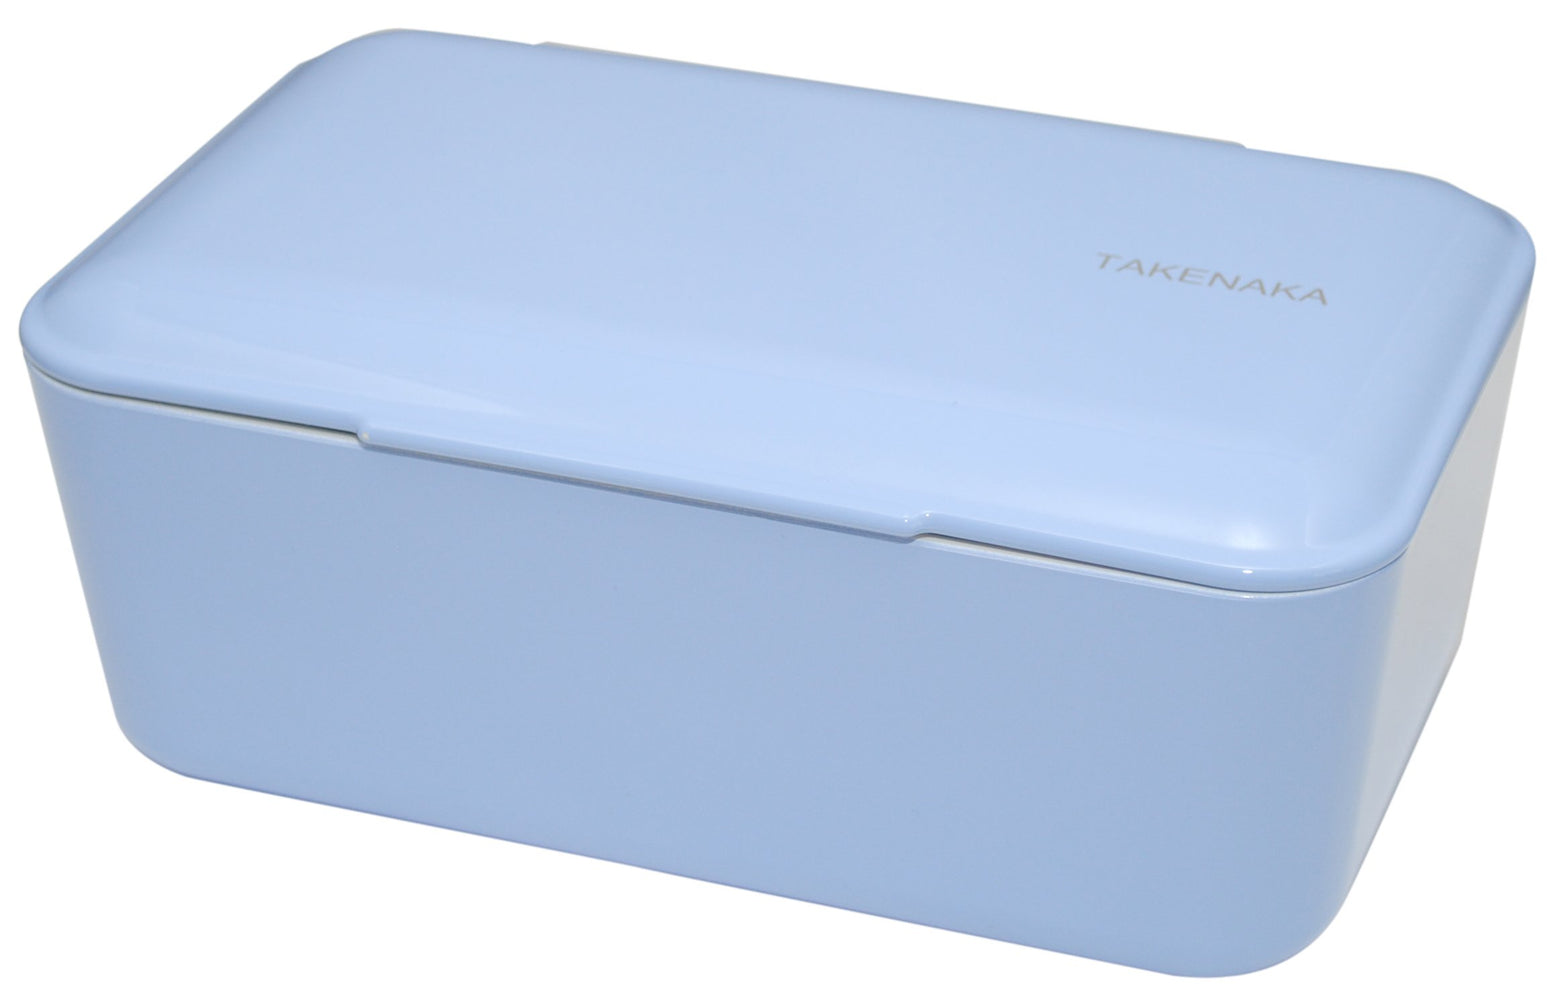 Expanded Bento Box | Serenity Blue by Takenaka - Bento&con the Bento Boxes specialist from Kyoto